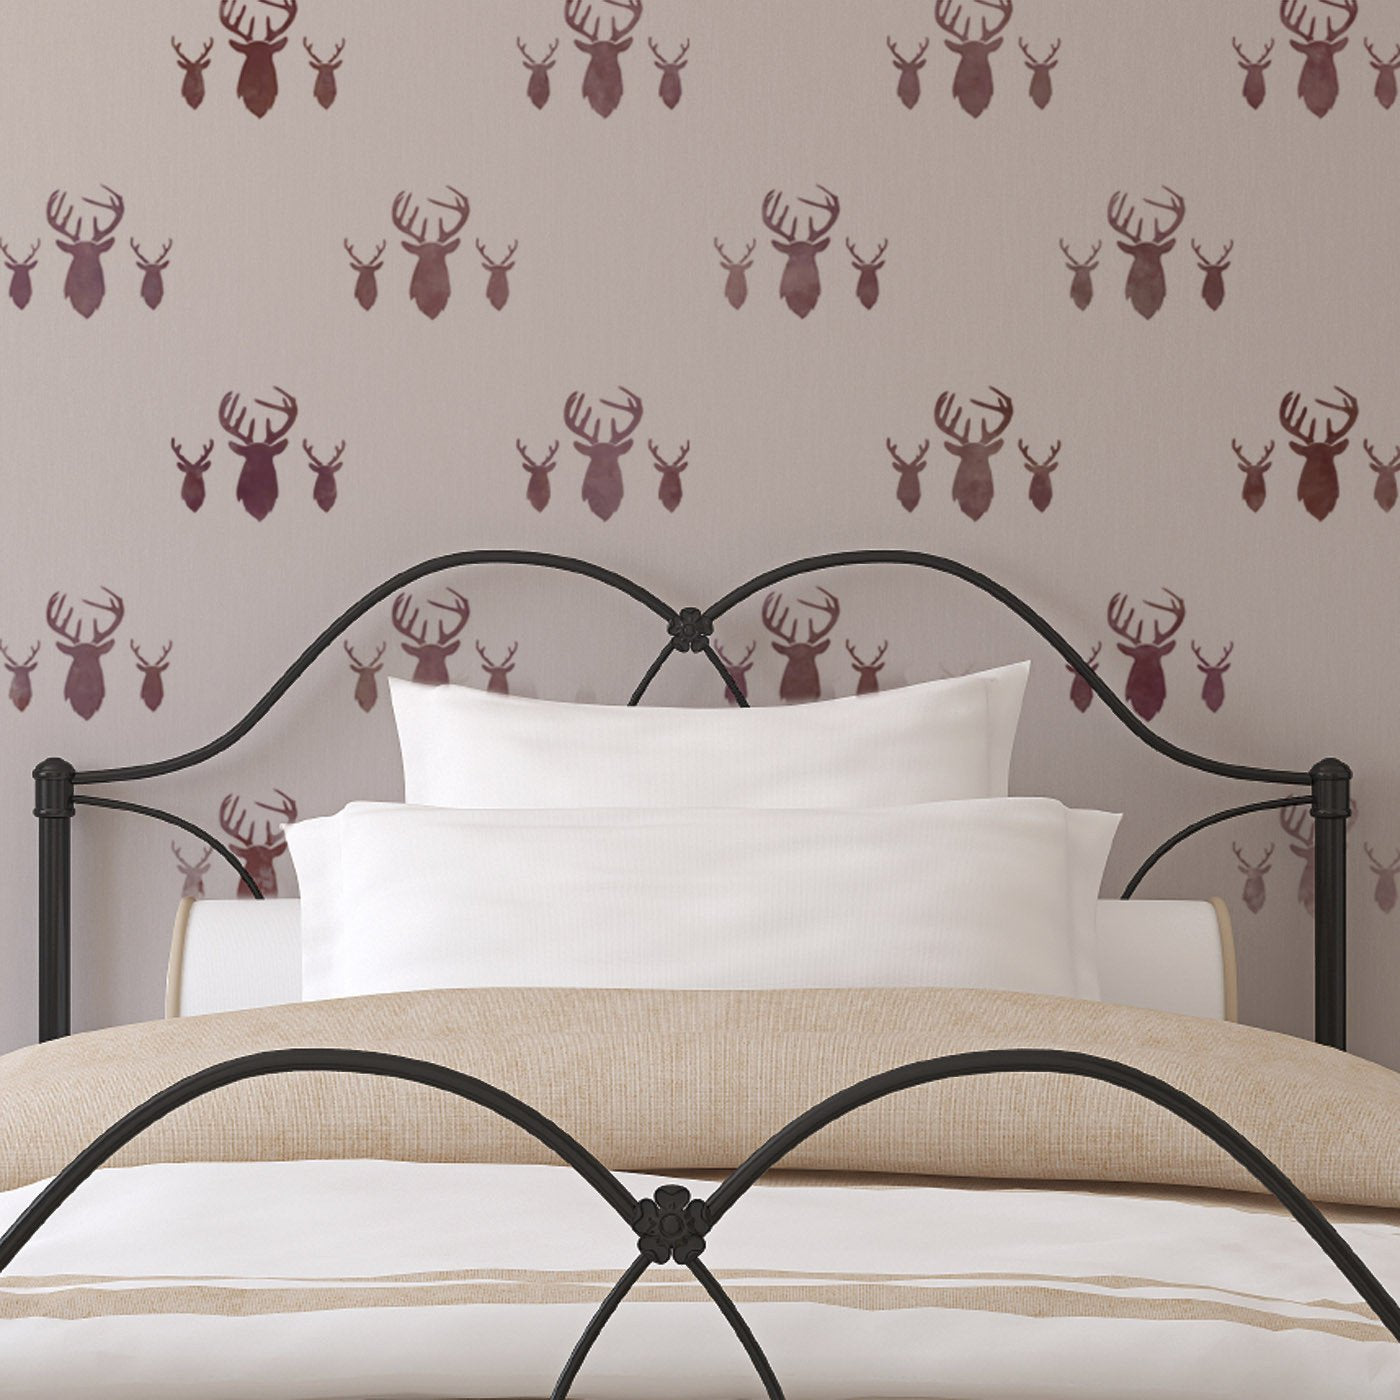 CraftStar Stag Heads Repeating Pattern Stencil over Bed